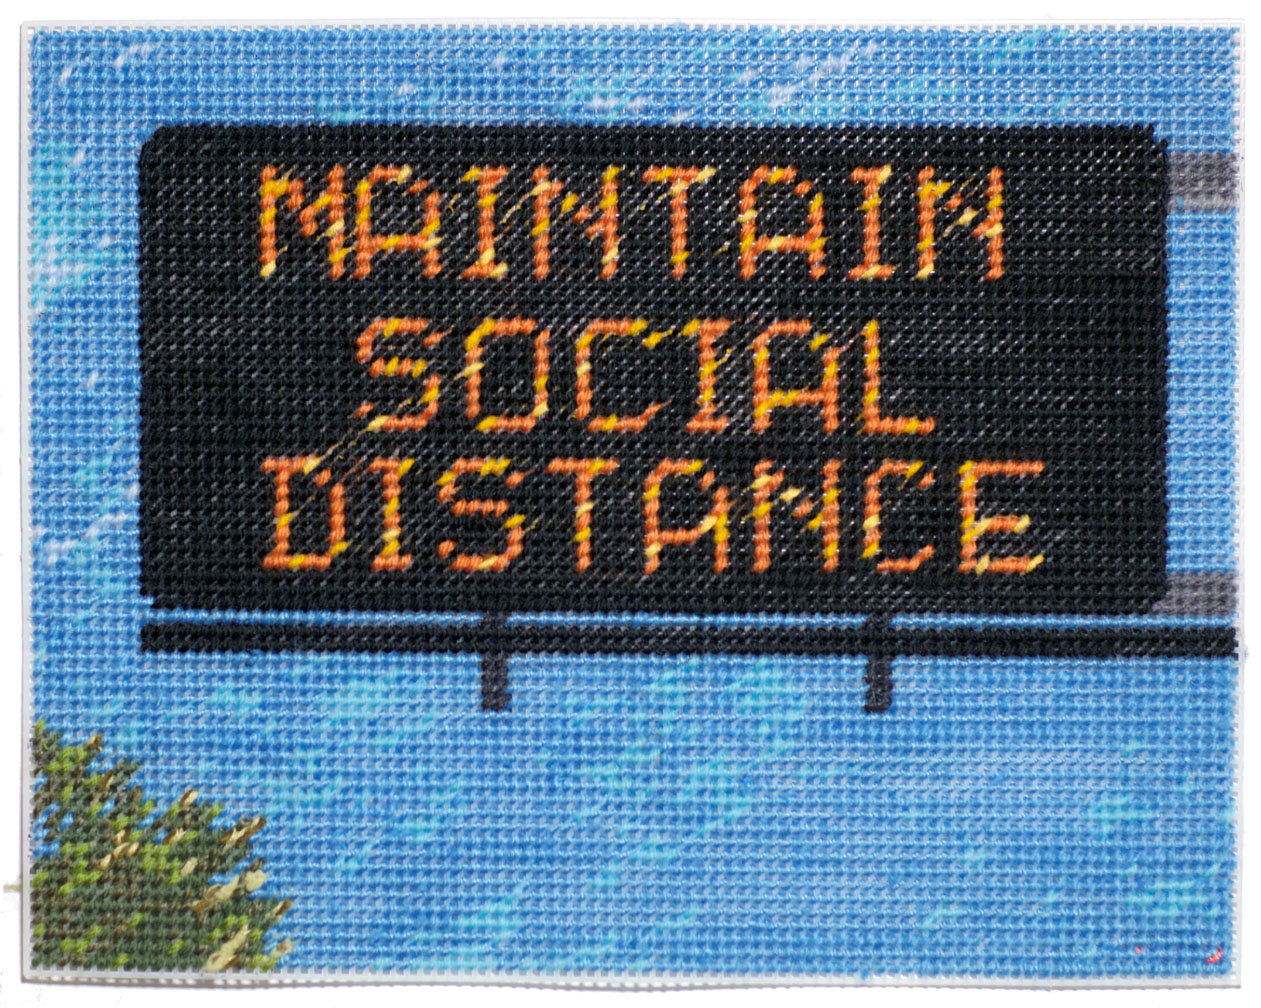 MH_MAINTAIN SOCIAL DISTANCE